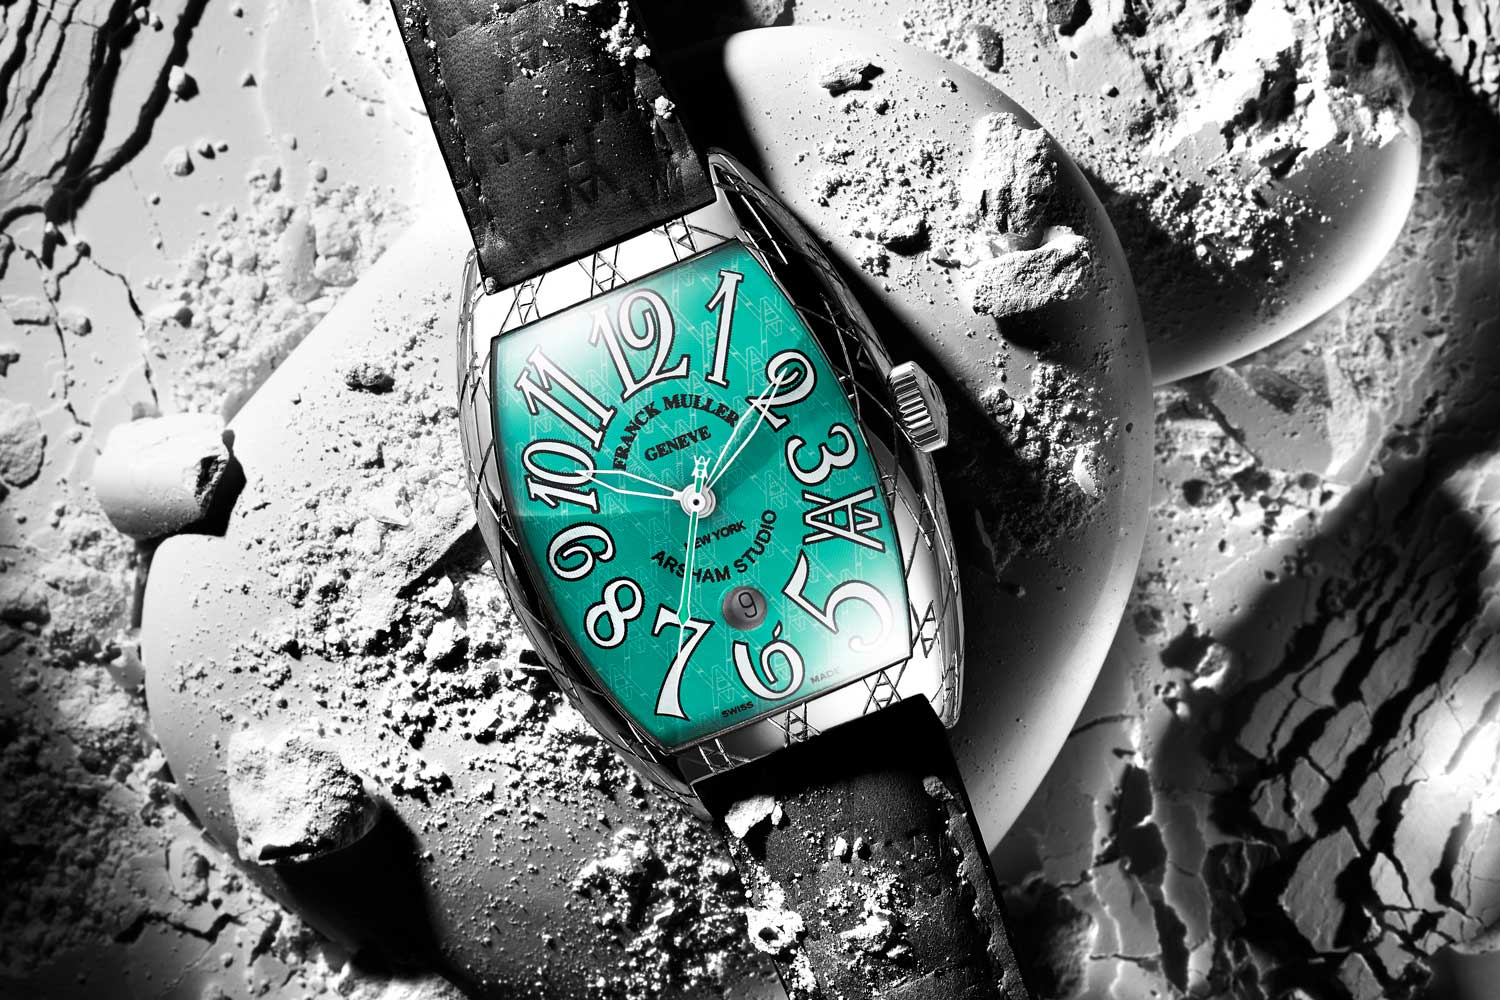 This special edition of the Franck Muller Casablanca will be available in five pieces, each one hand-engraved by master engraver King Nerd.